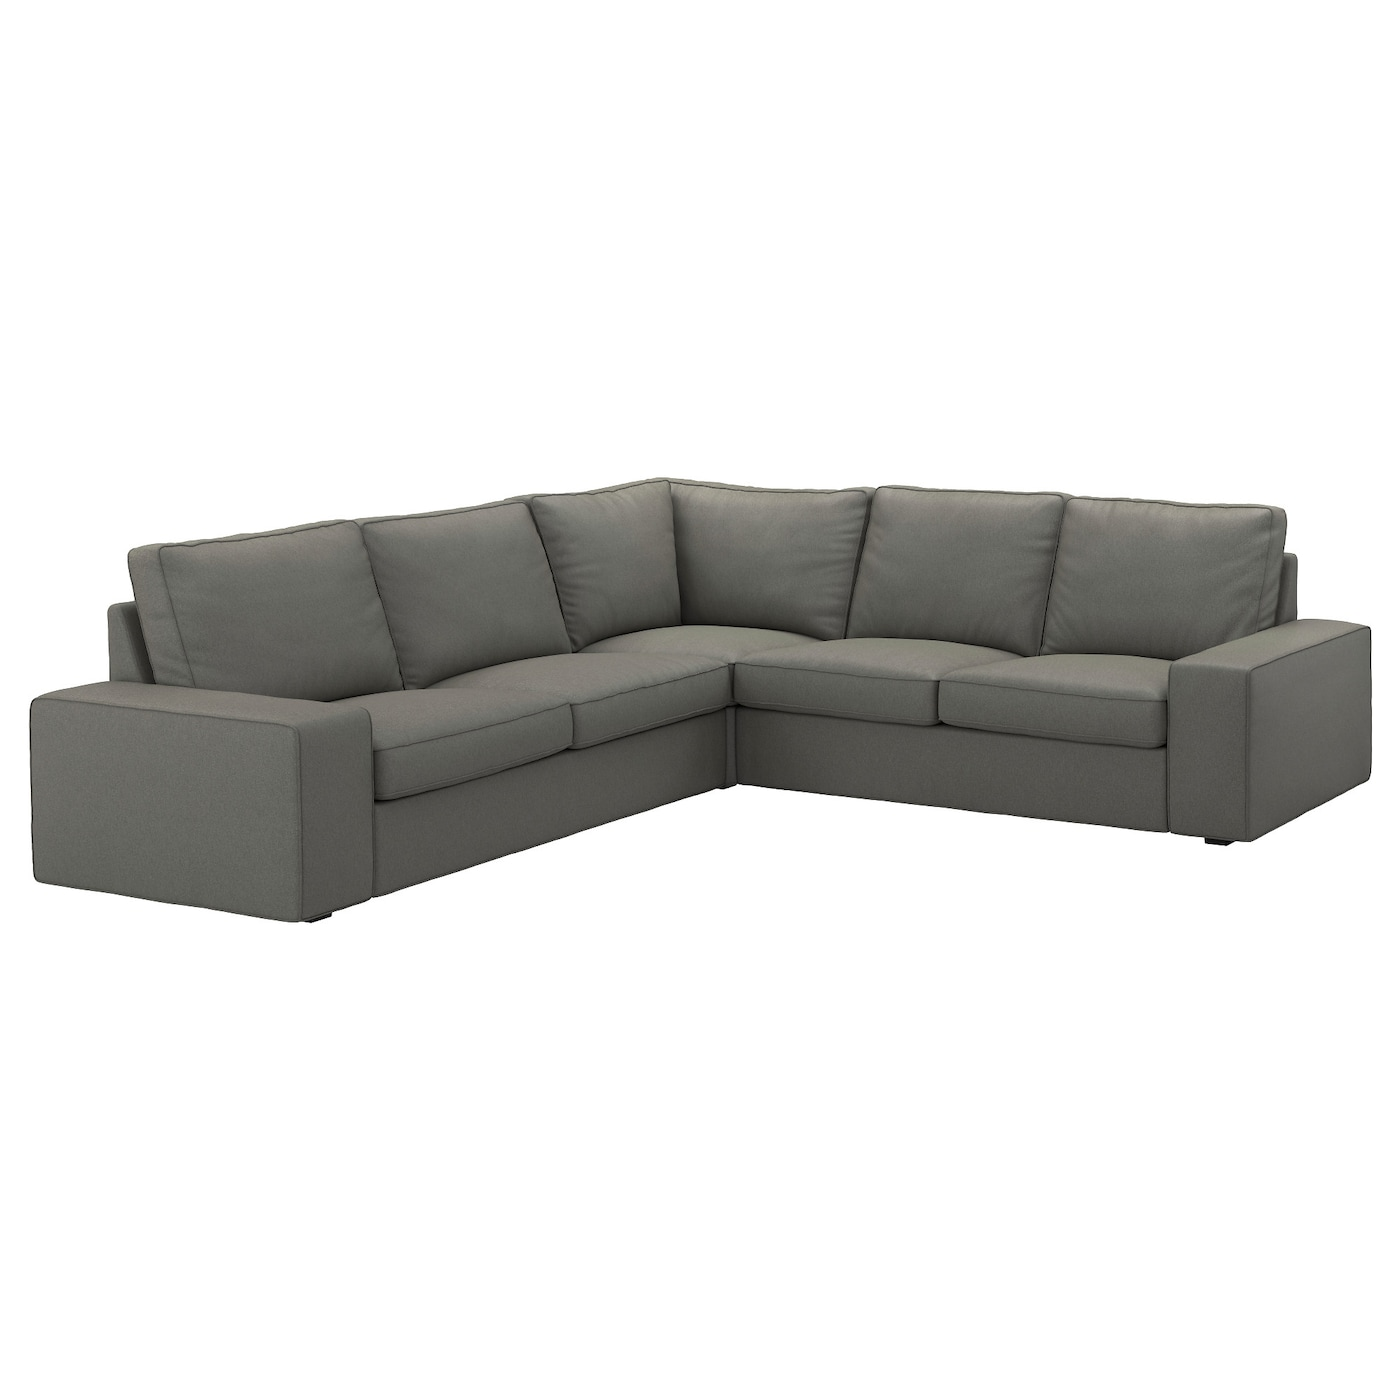 Kivik Corner Sofa 2 2 Borred Grey Green Ikea